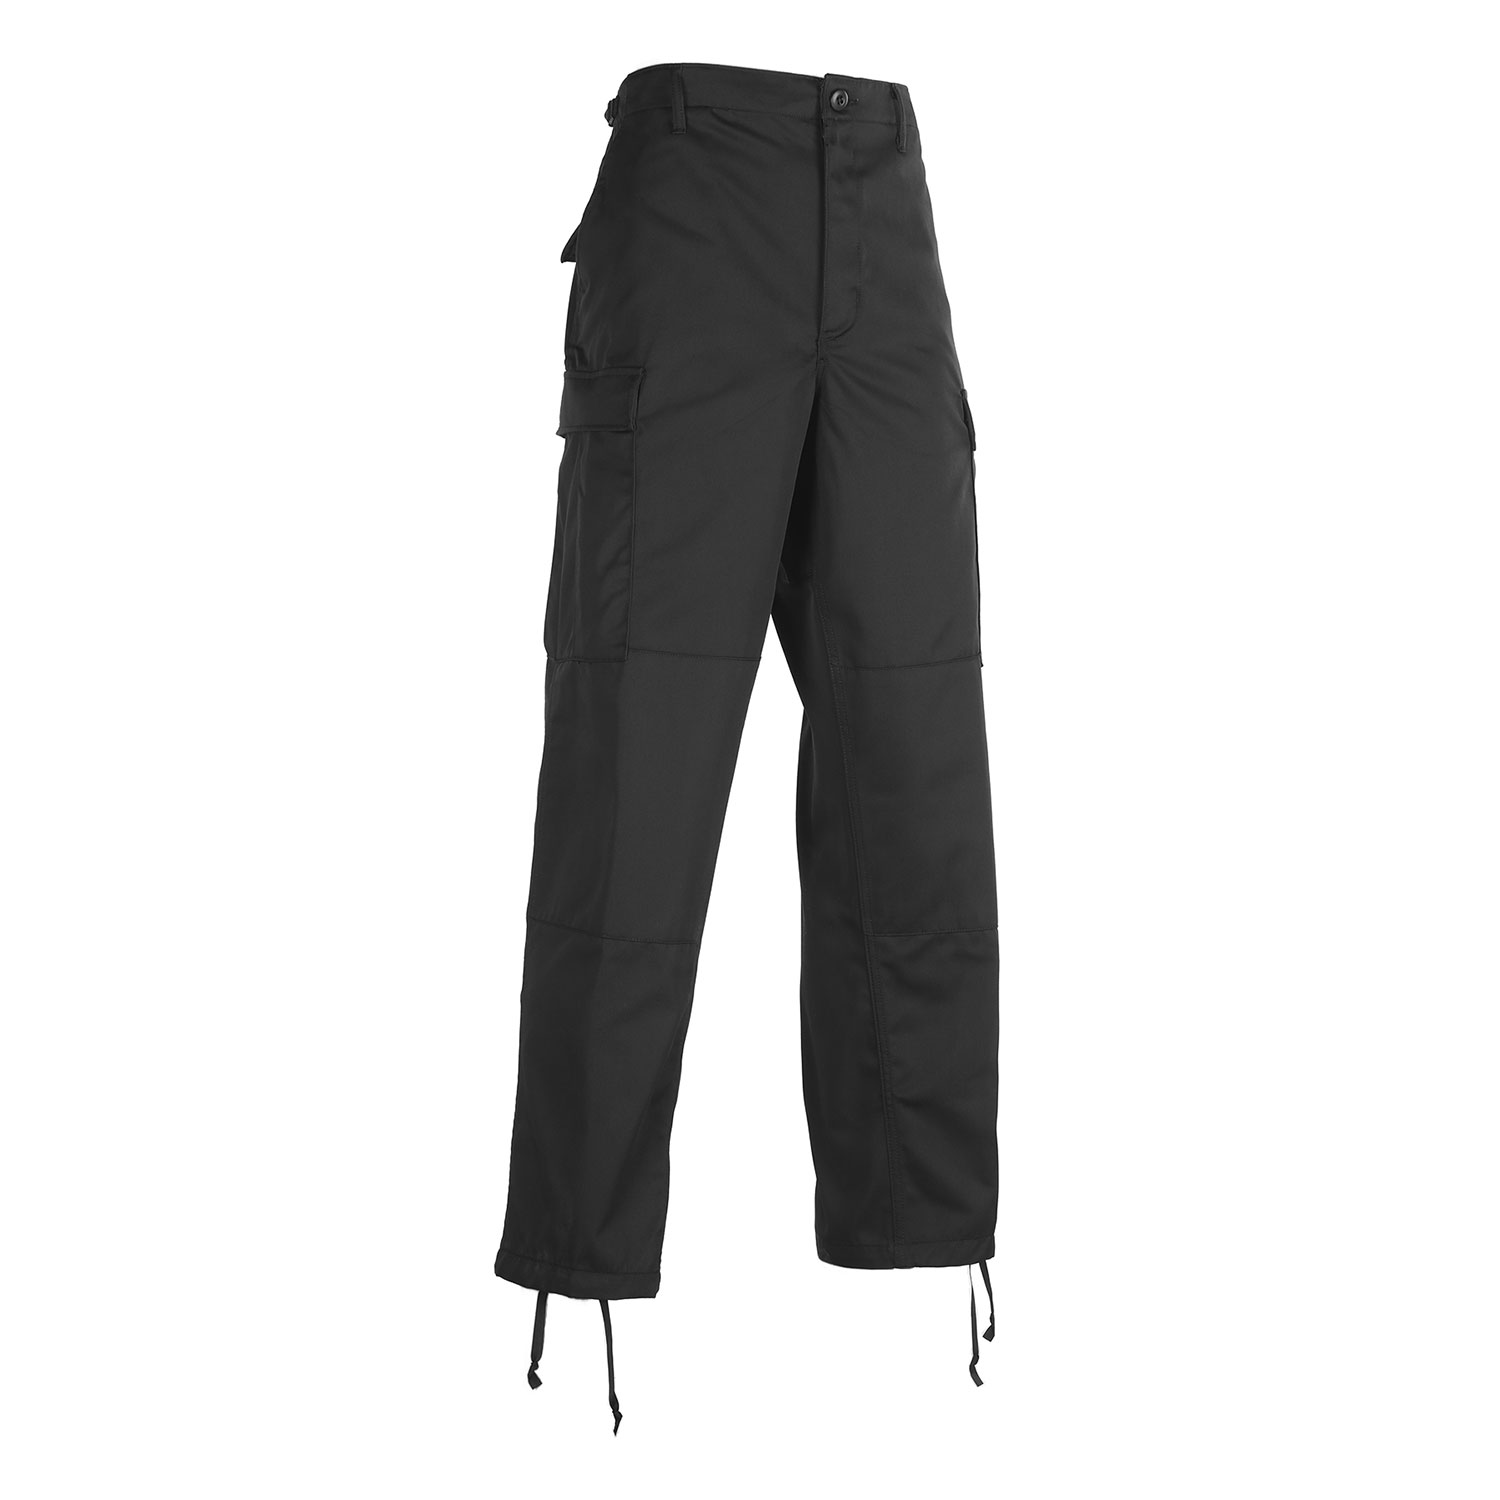 Propper BDU Uniform Trousers